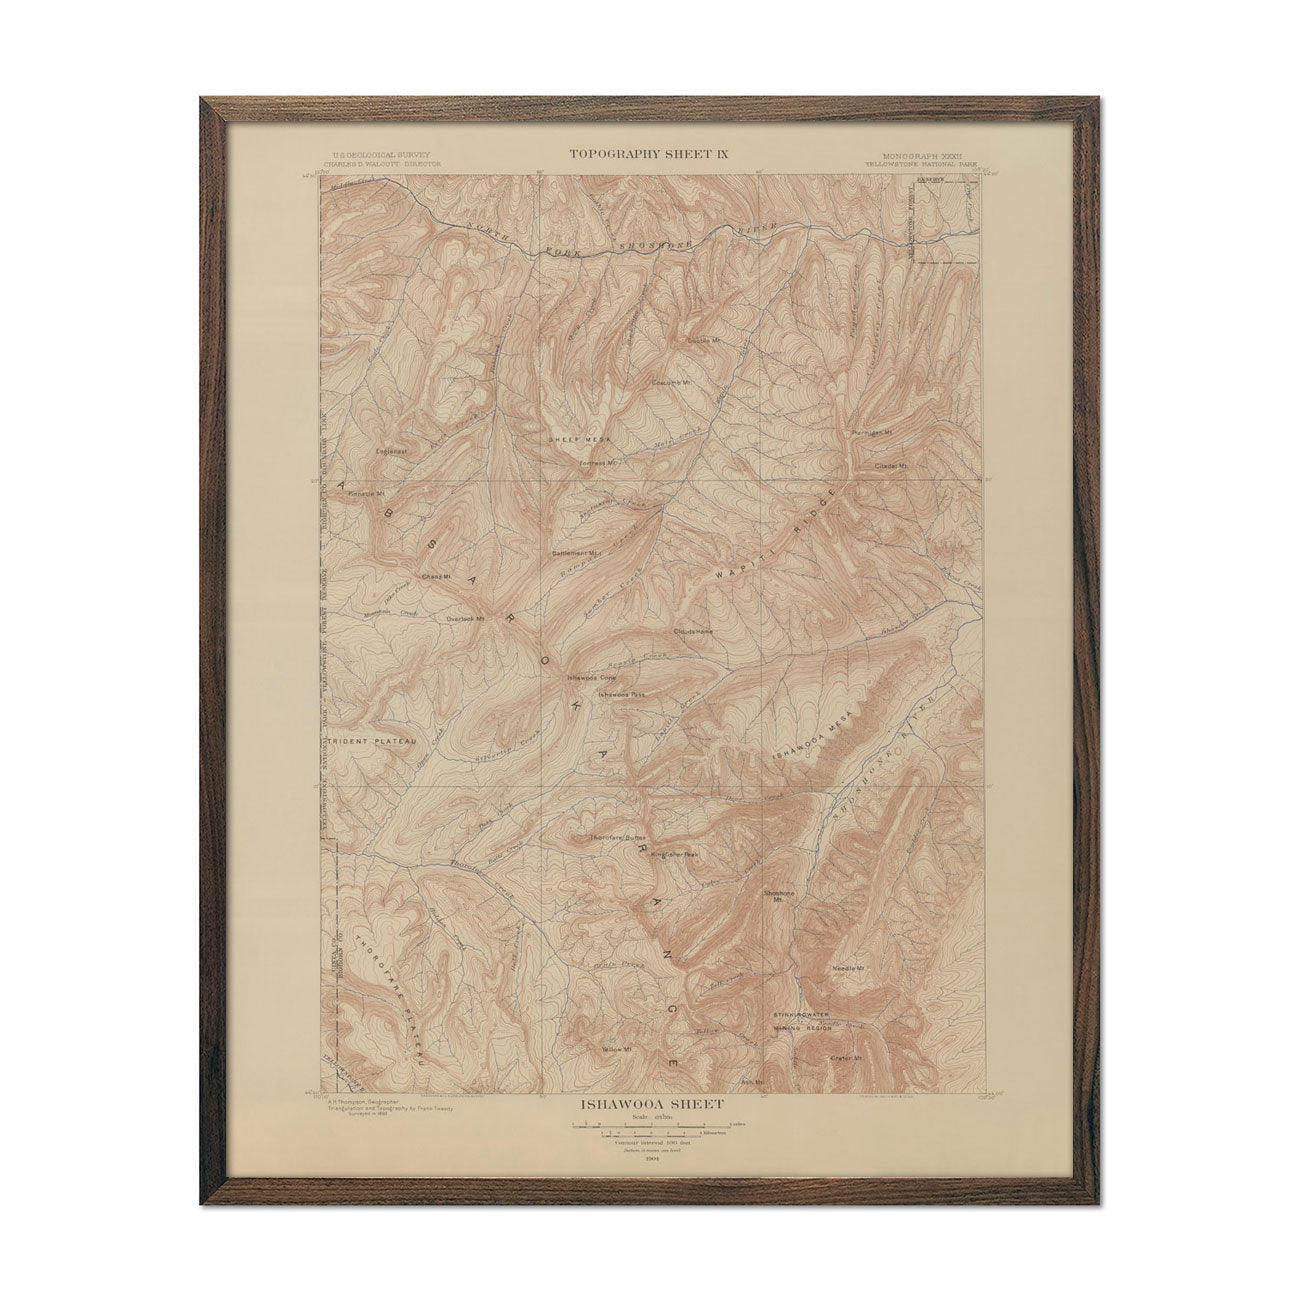 1904 Yellowstone Topographic Map of Ishawooa